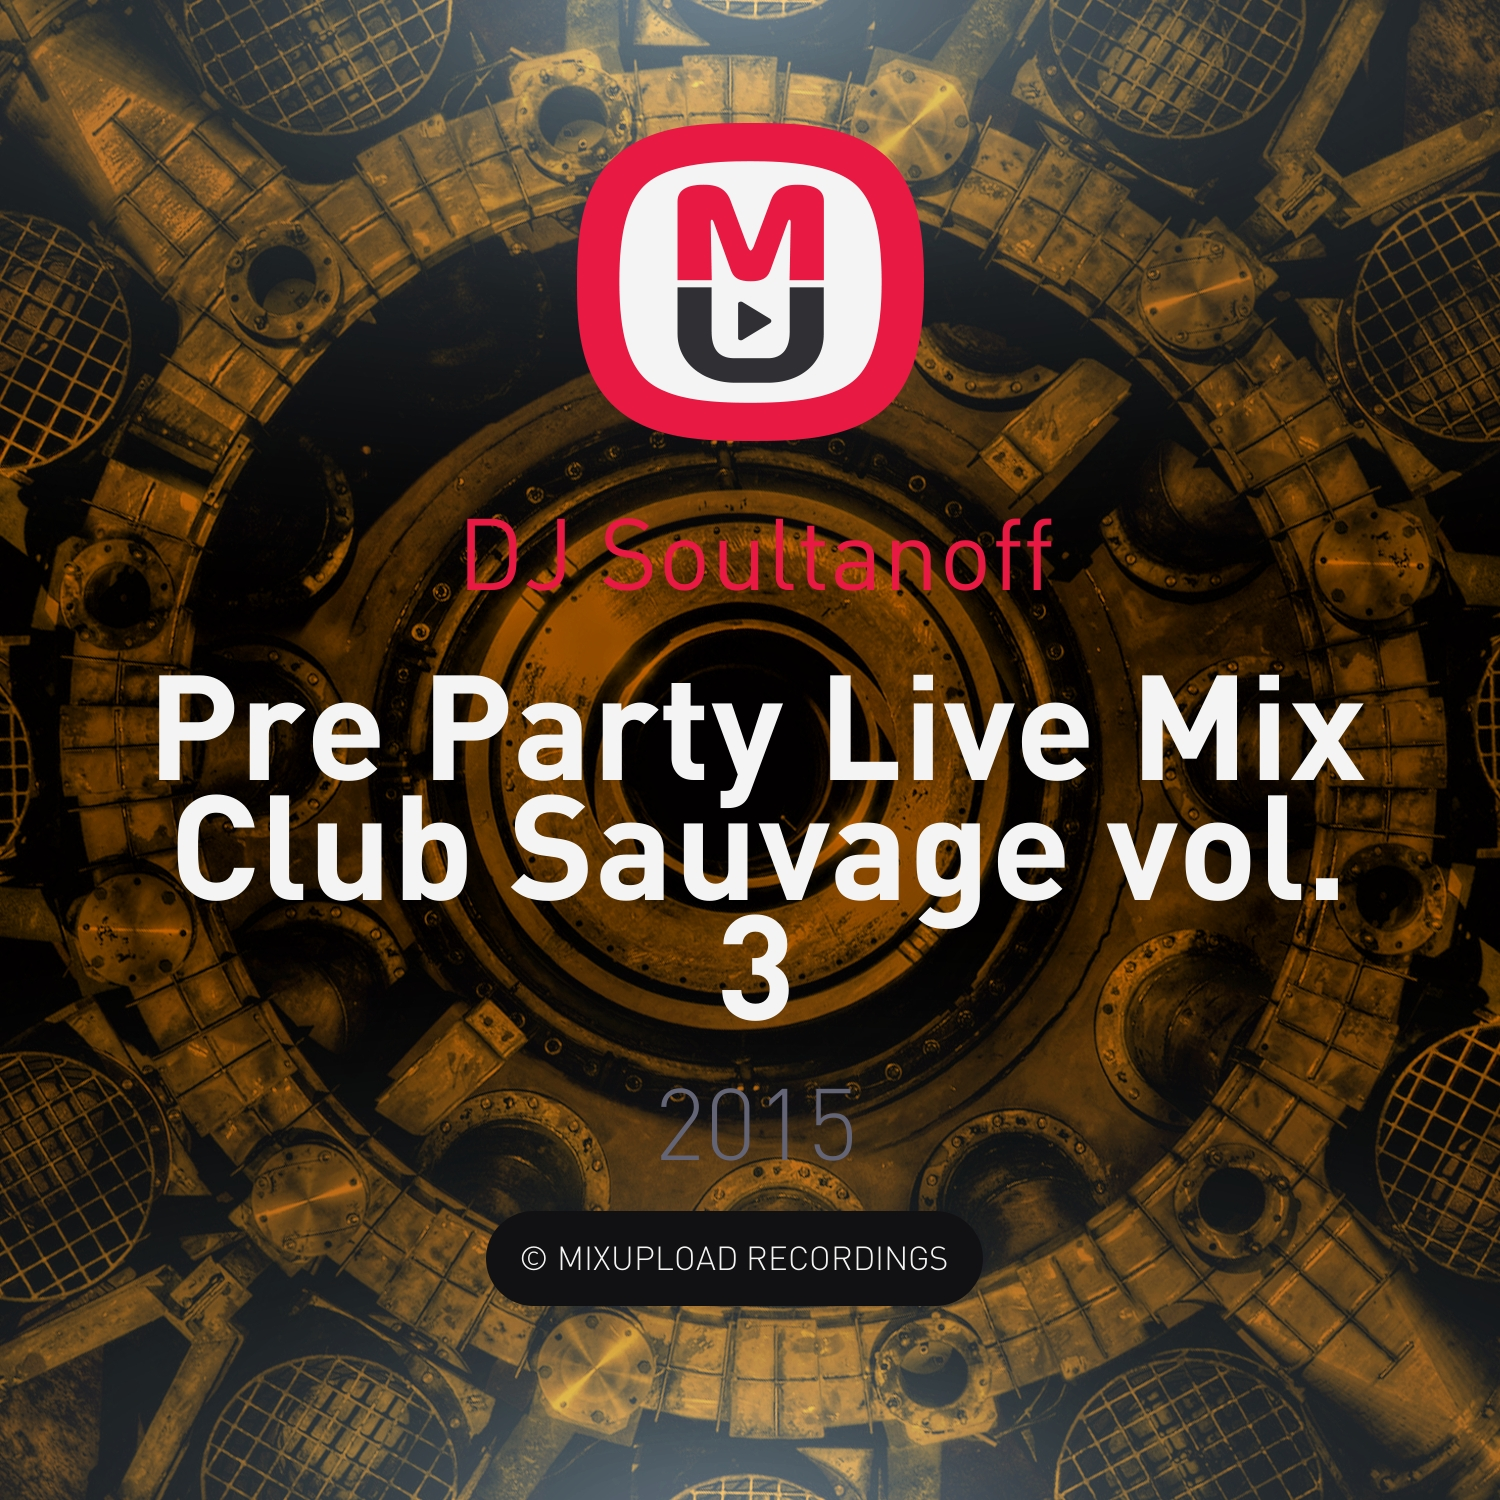 DJ Soultanoff - Pre Party Live Mix Club Sauvage vol. 3 (21.02.2015)